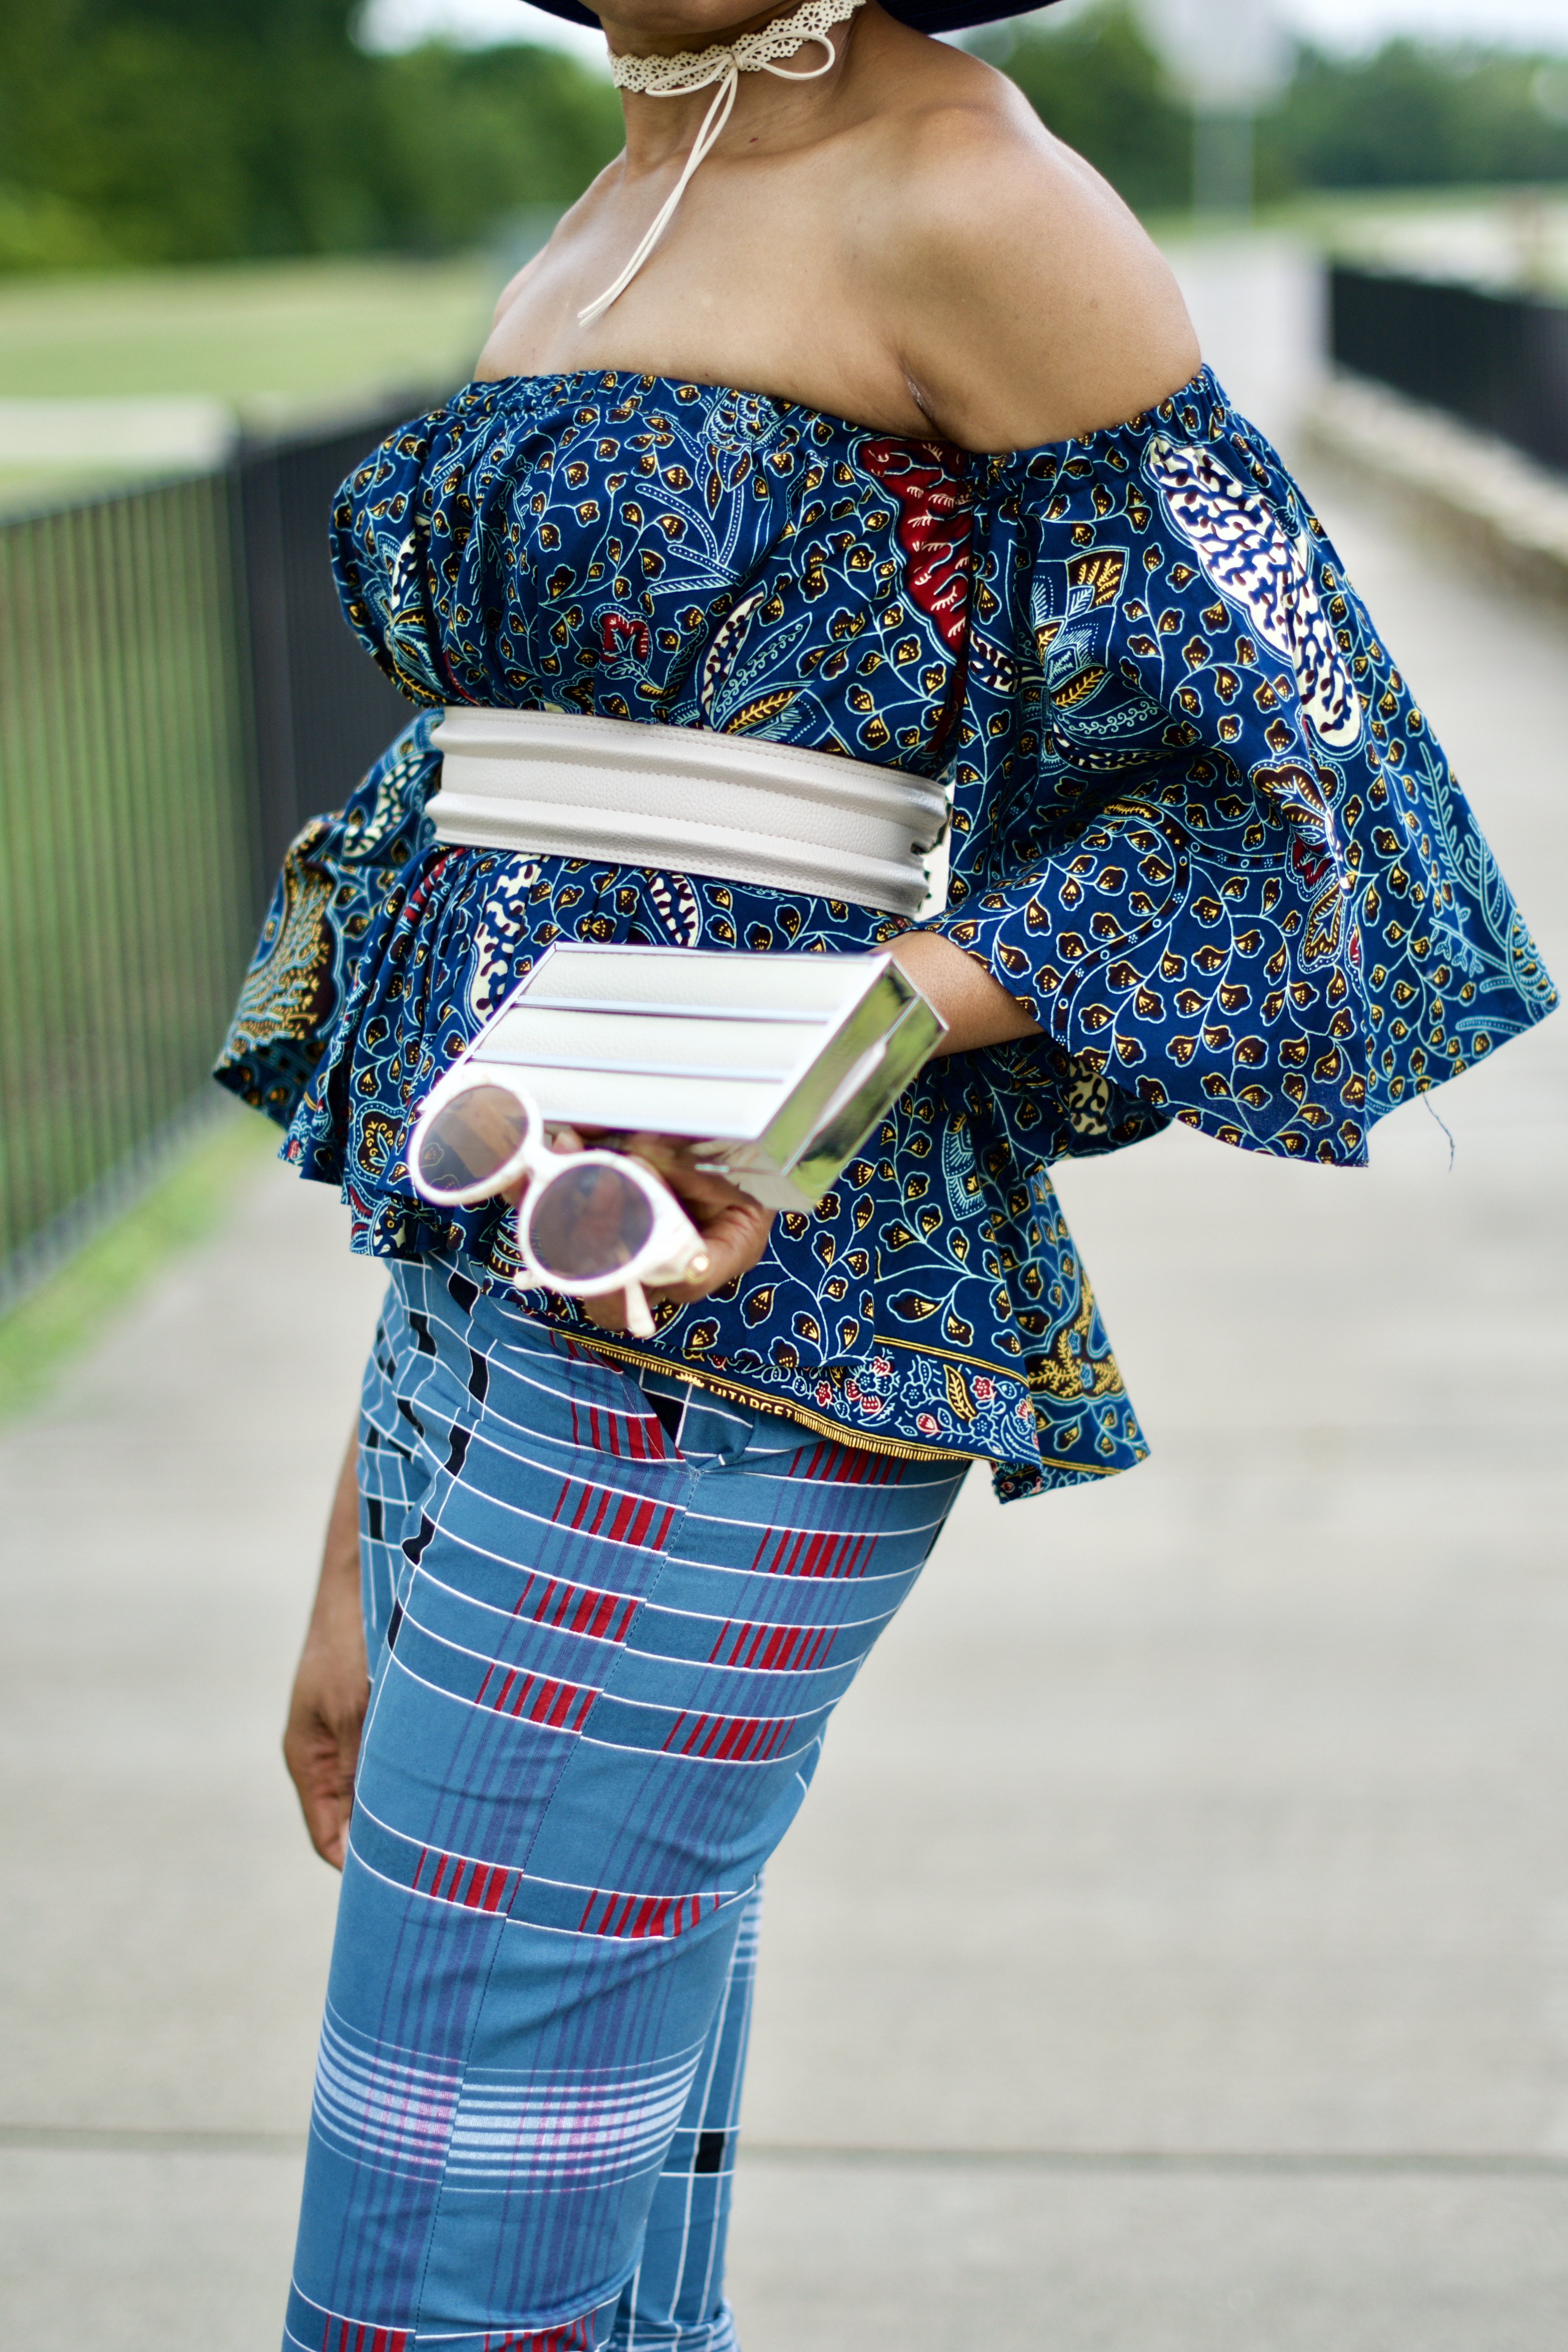 How to Mix Prints-Ankara Prints Posted by Vivellefashion